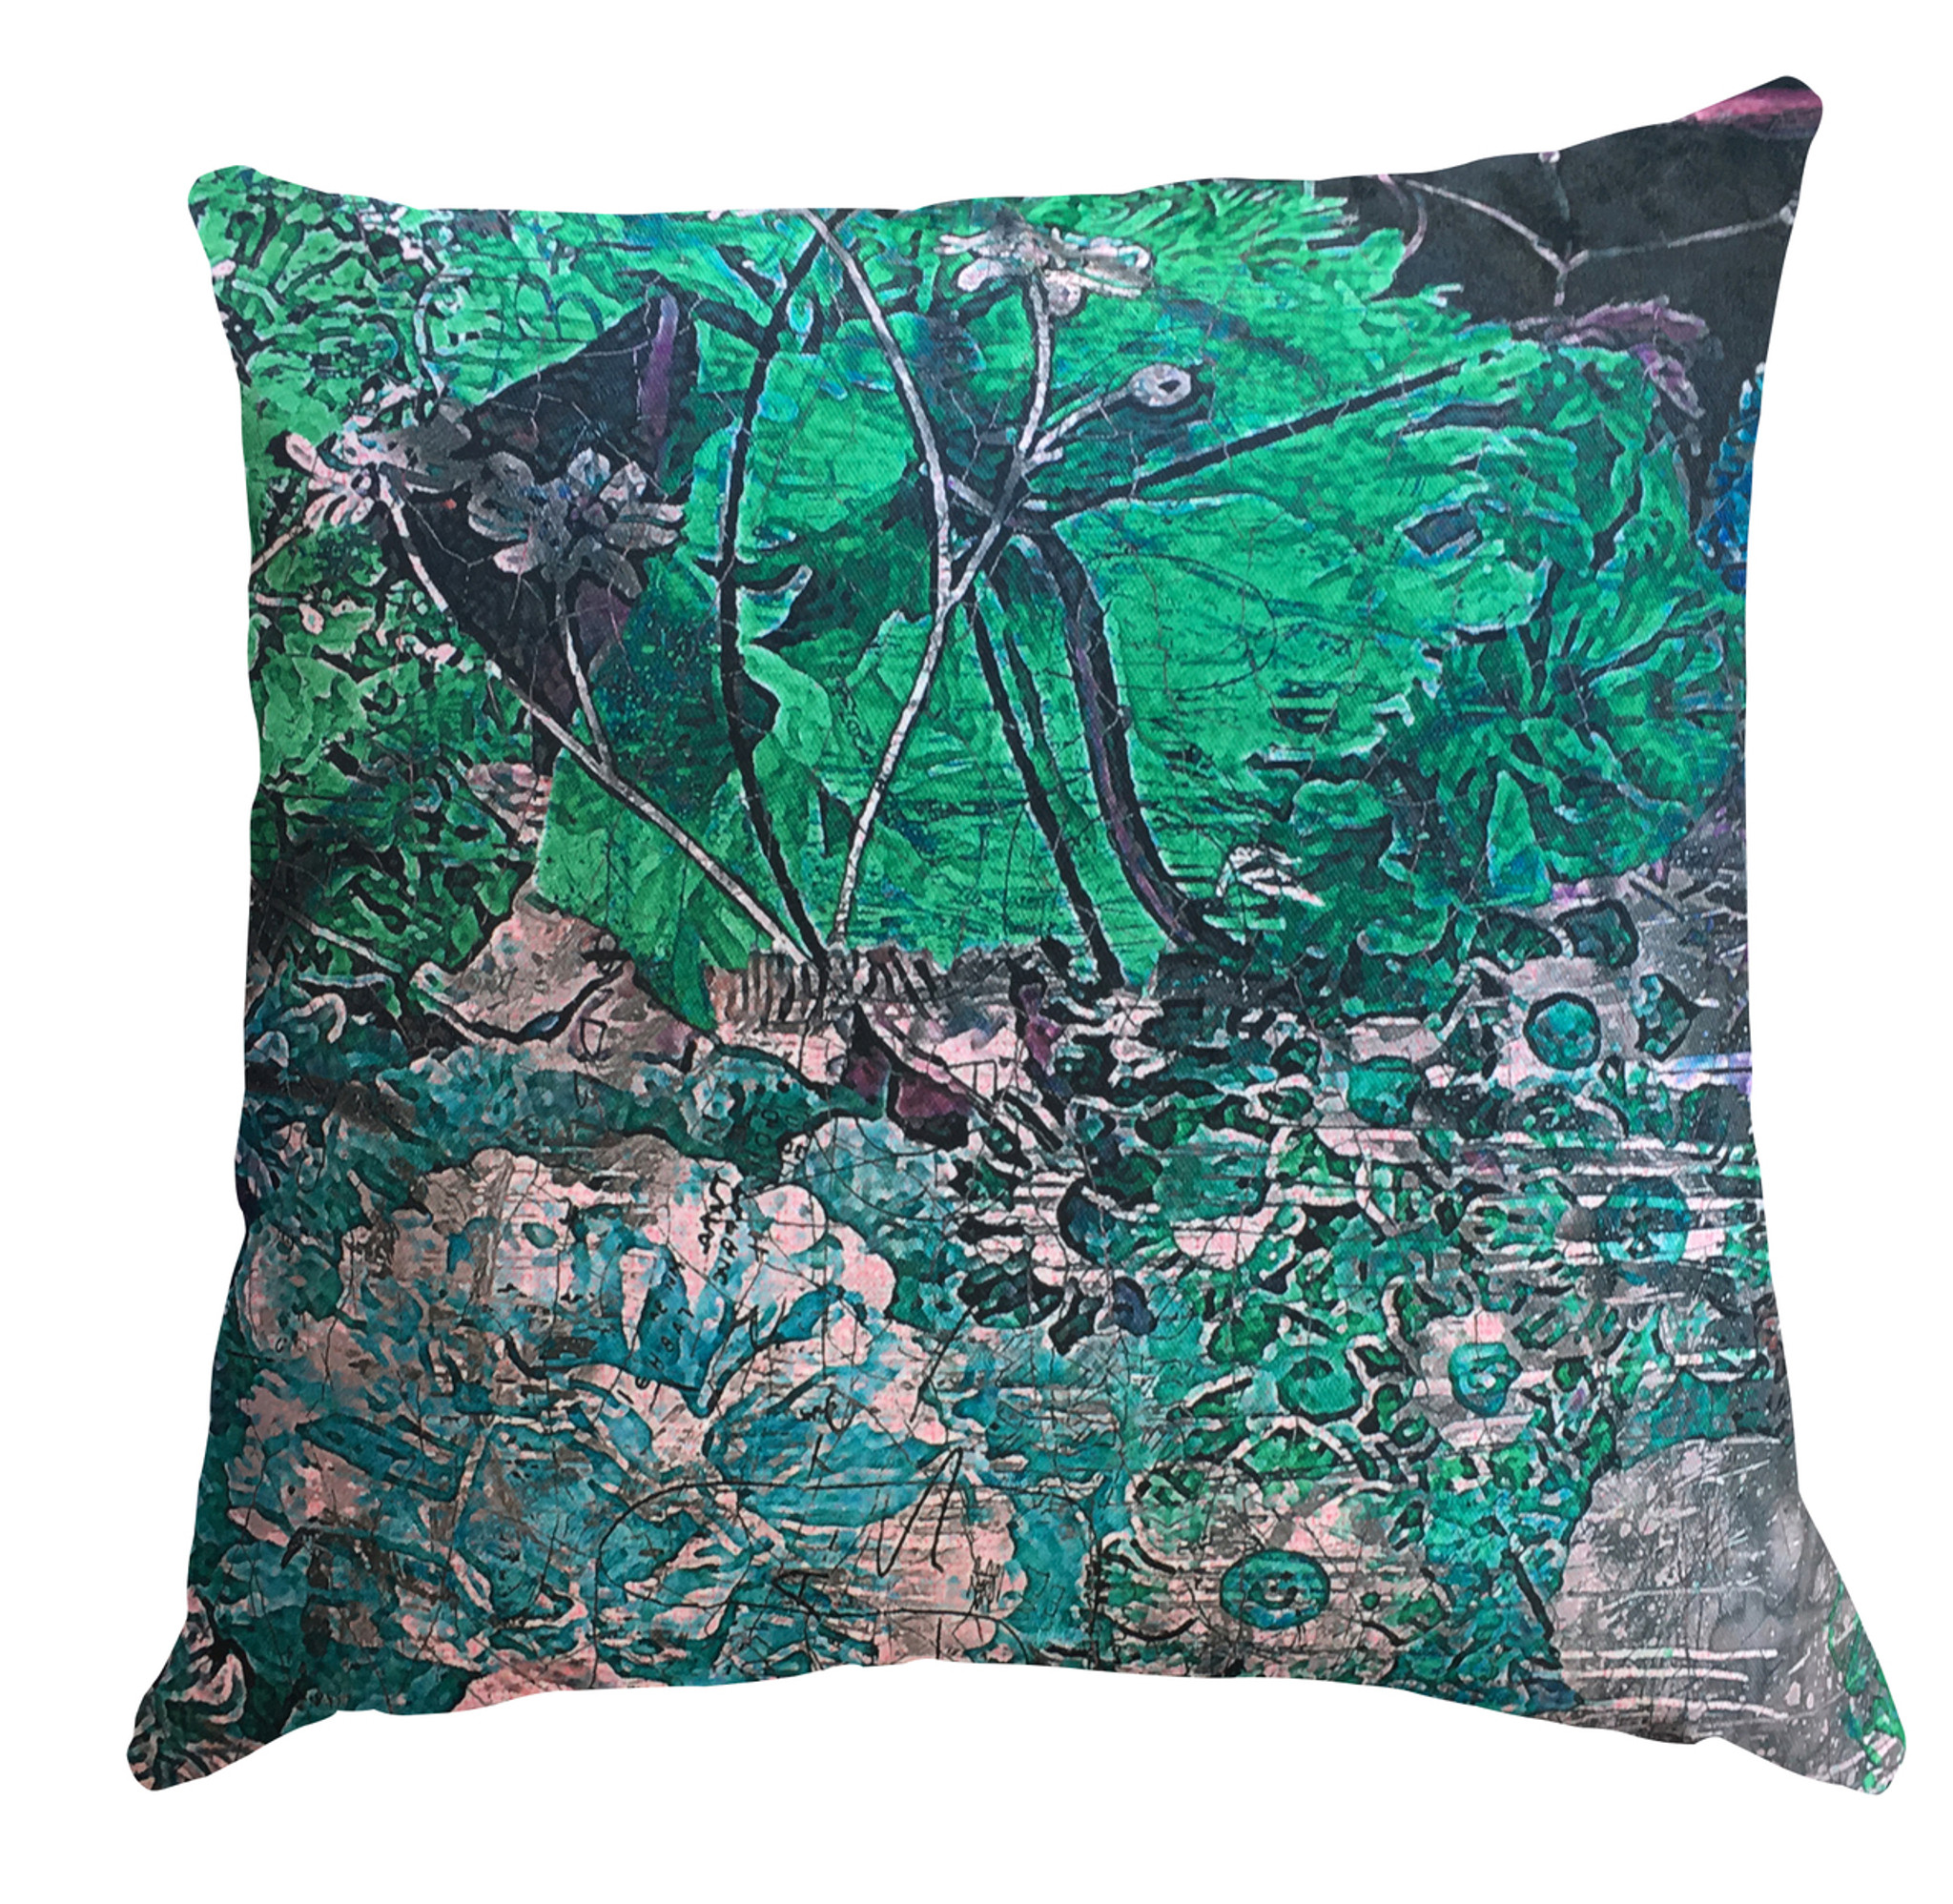 Cushion Cover - Still Life with Flowers - Emerald